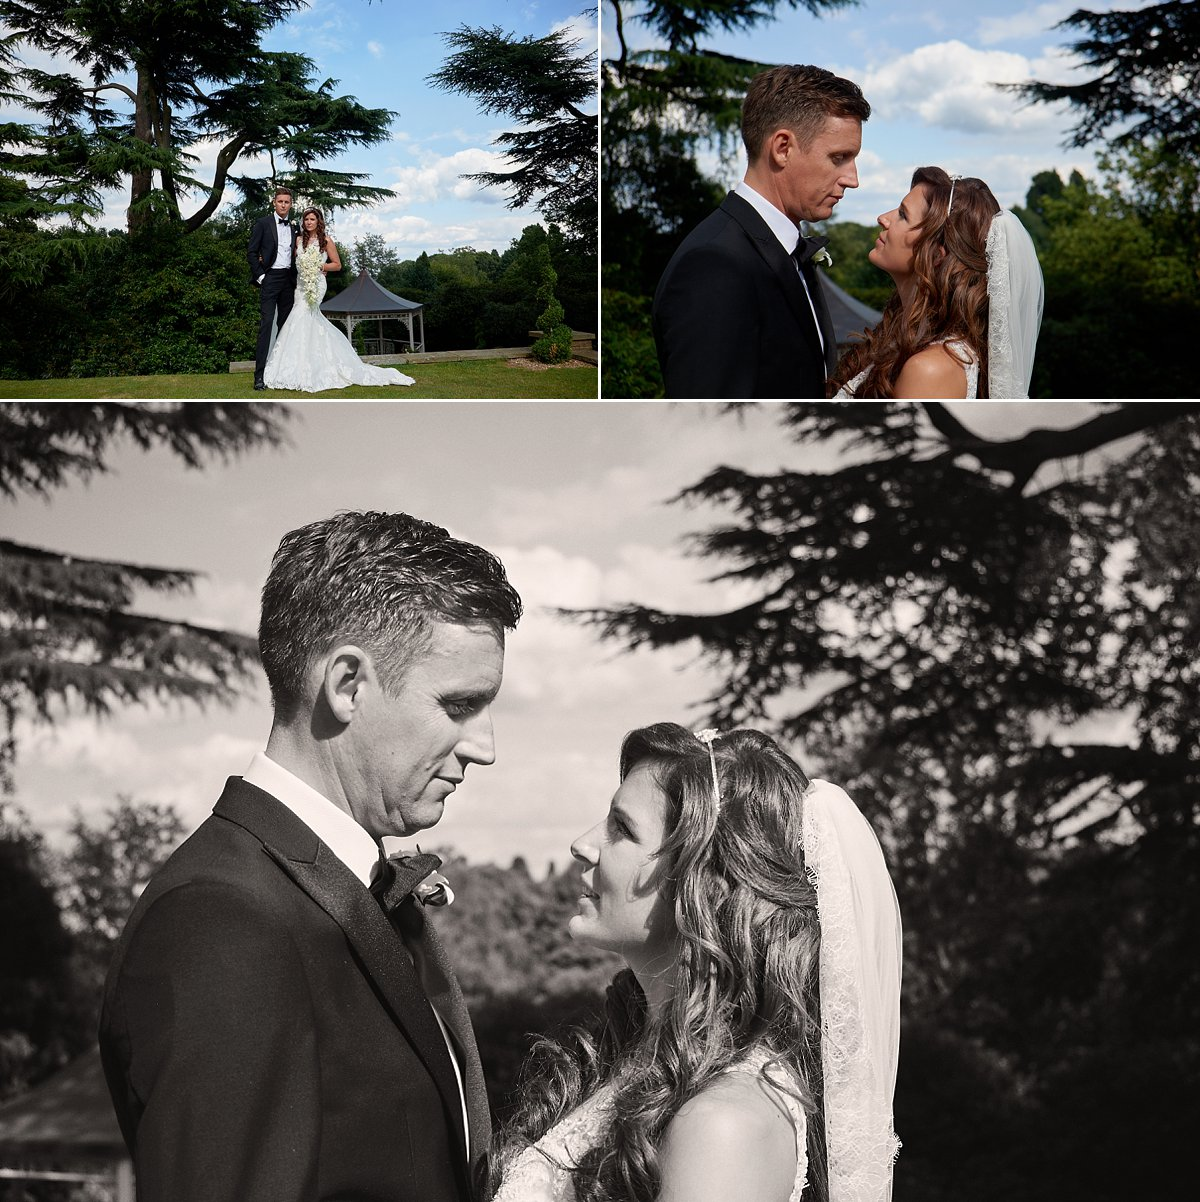 Bride and Groom portraits pennyhill Park Wedding Photographer Jason Leaman Photography